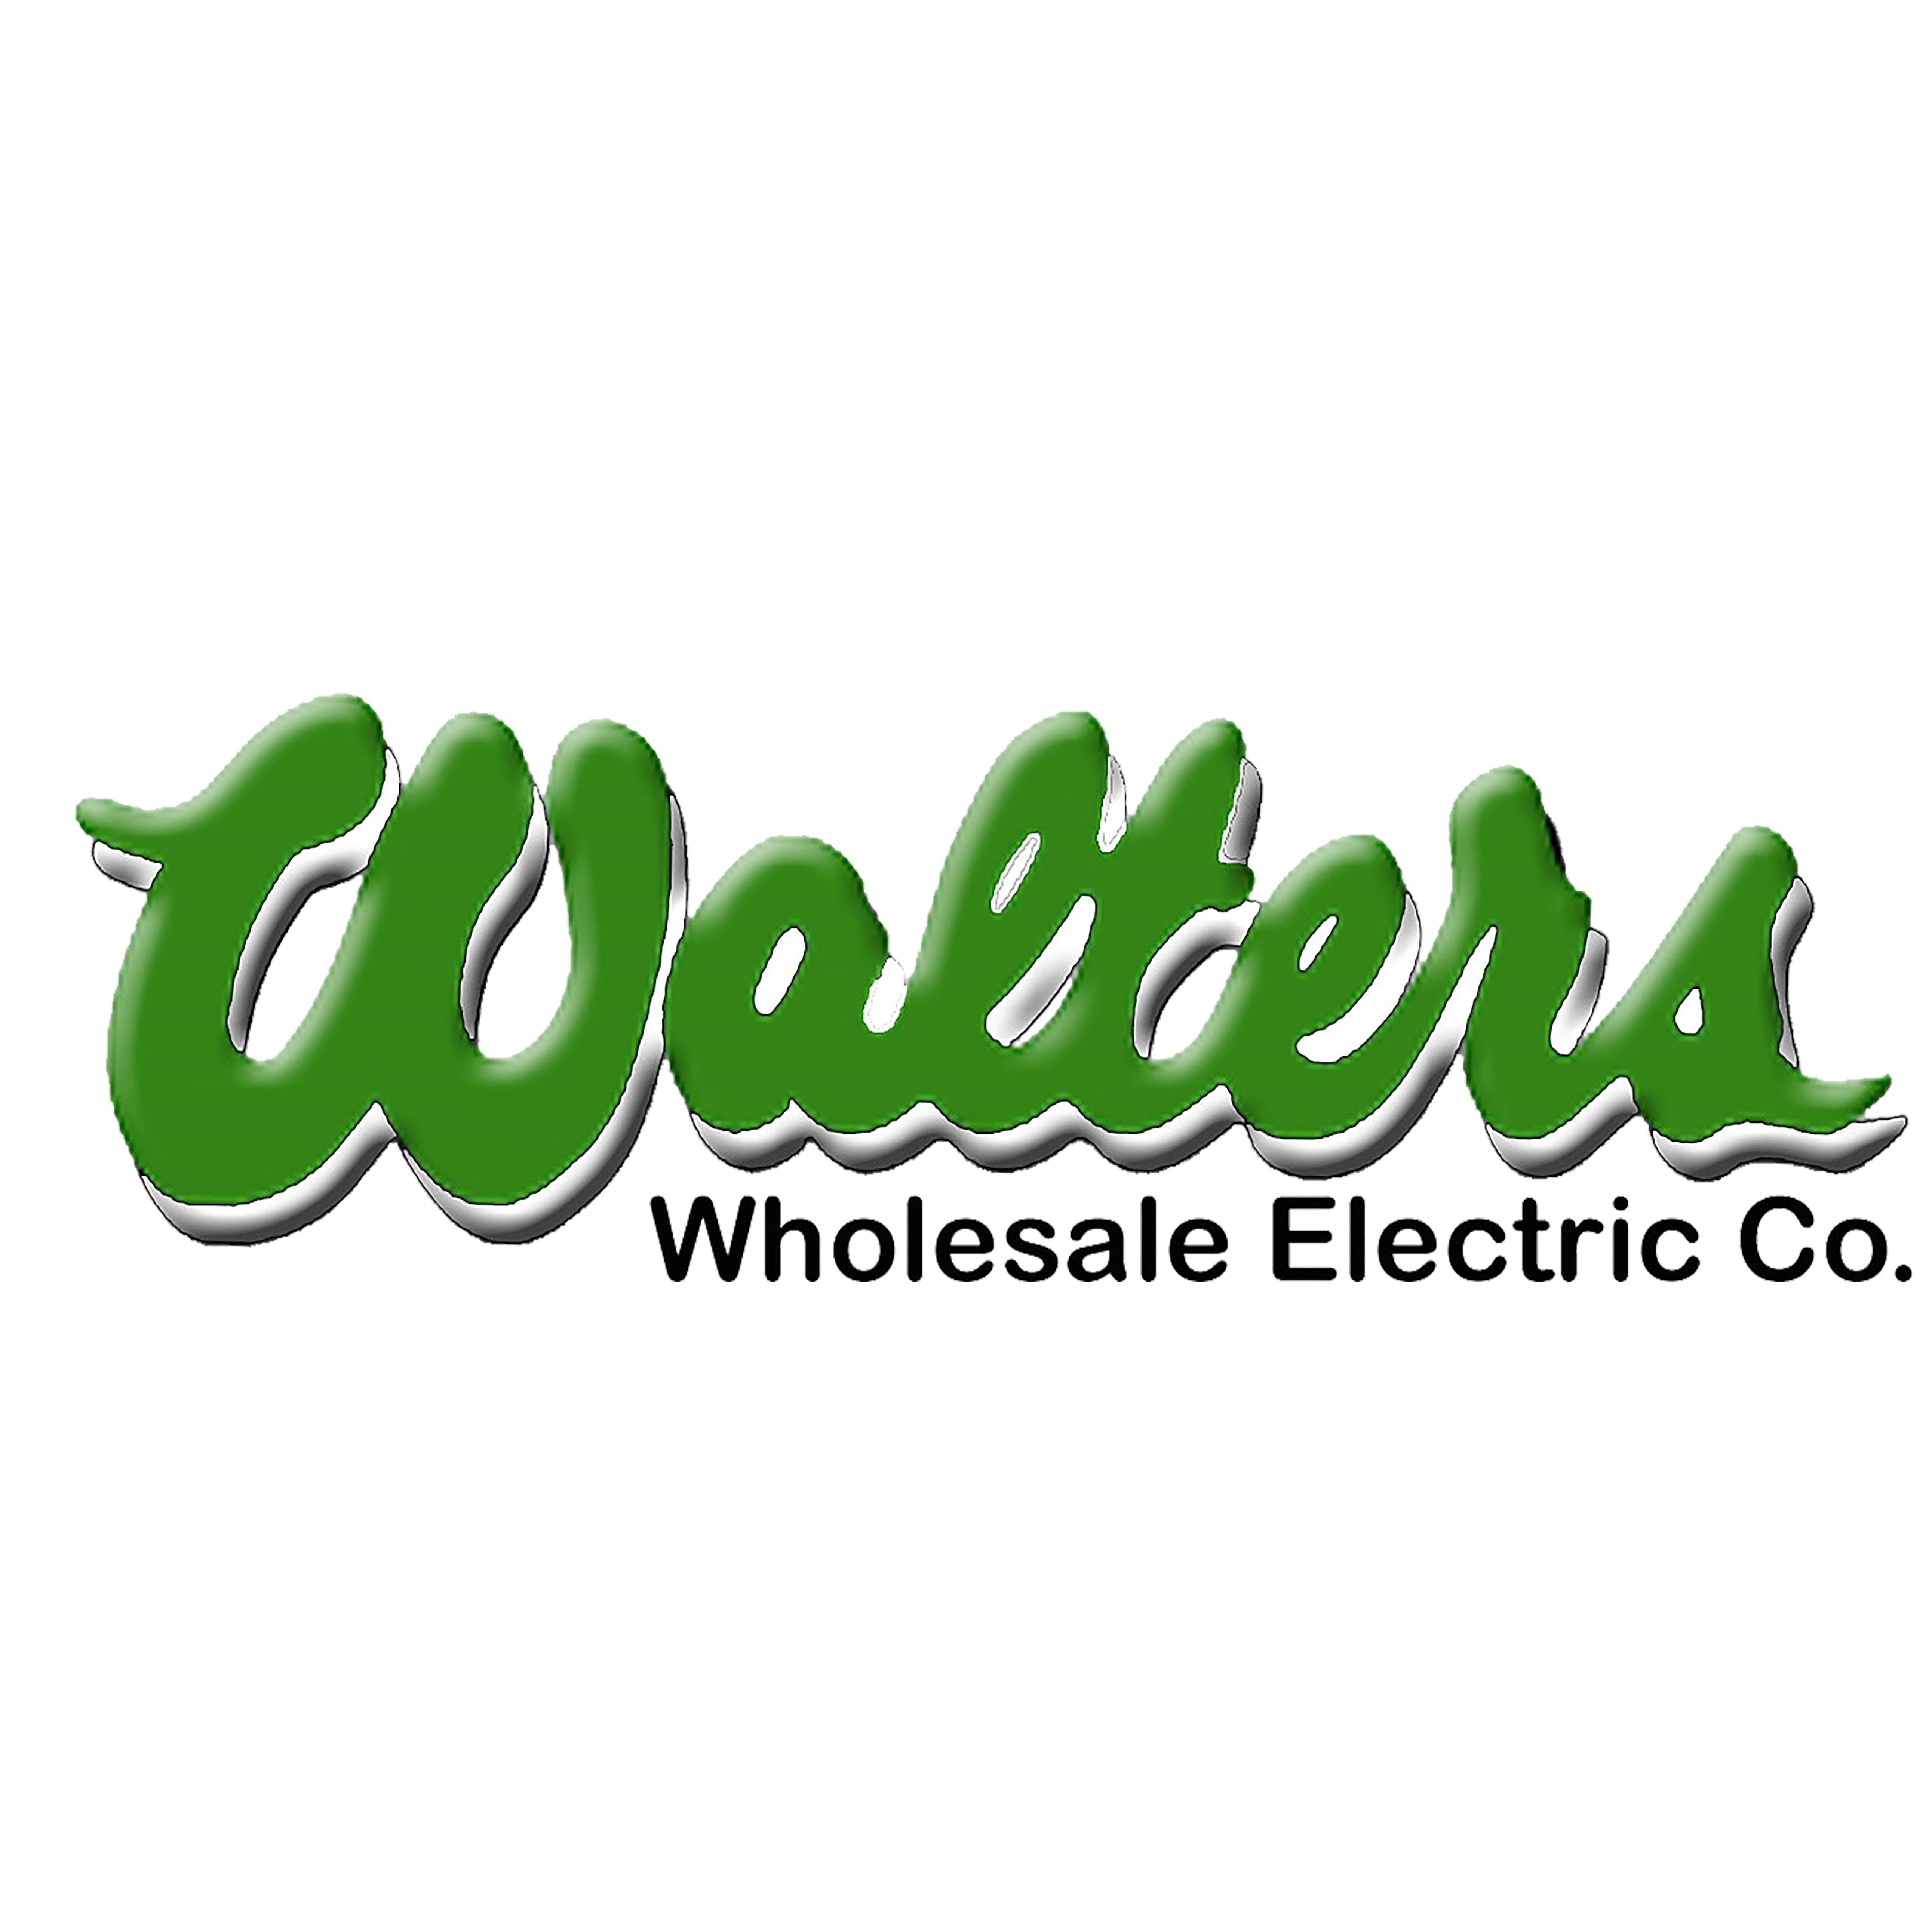 Walters Wholesale Electric Co. - Low Voltage Division